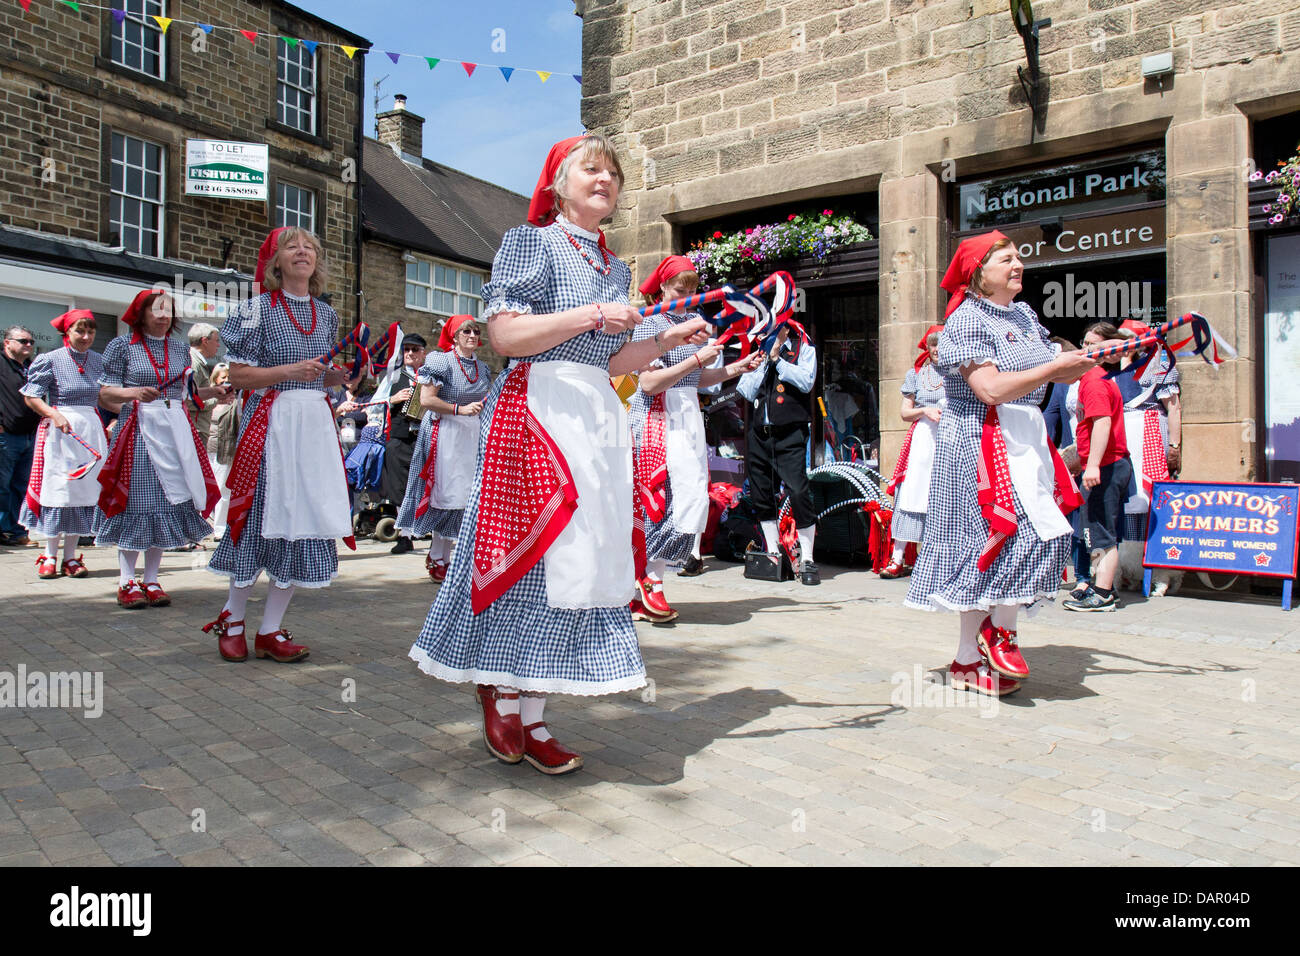 Portrait of traditional folk dancers at the Bakewell Day of Dance 2013, Derbyshire, England - Stock Image